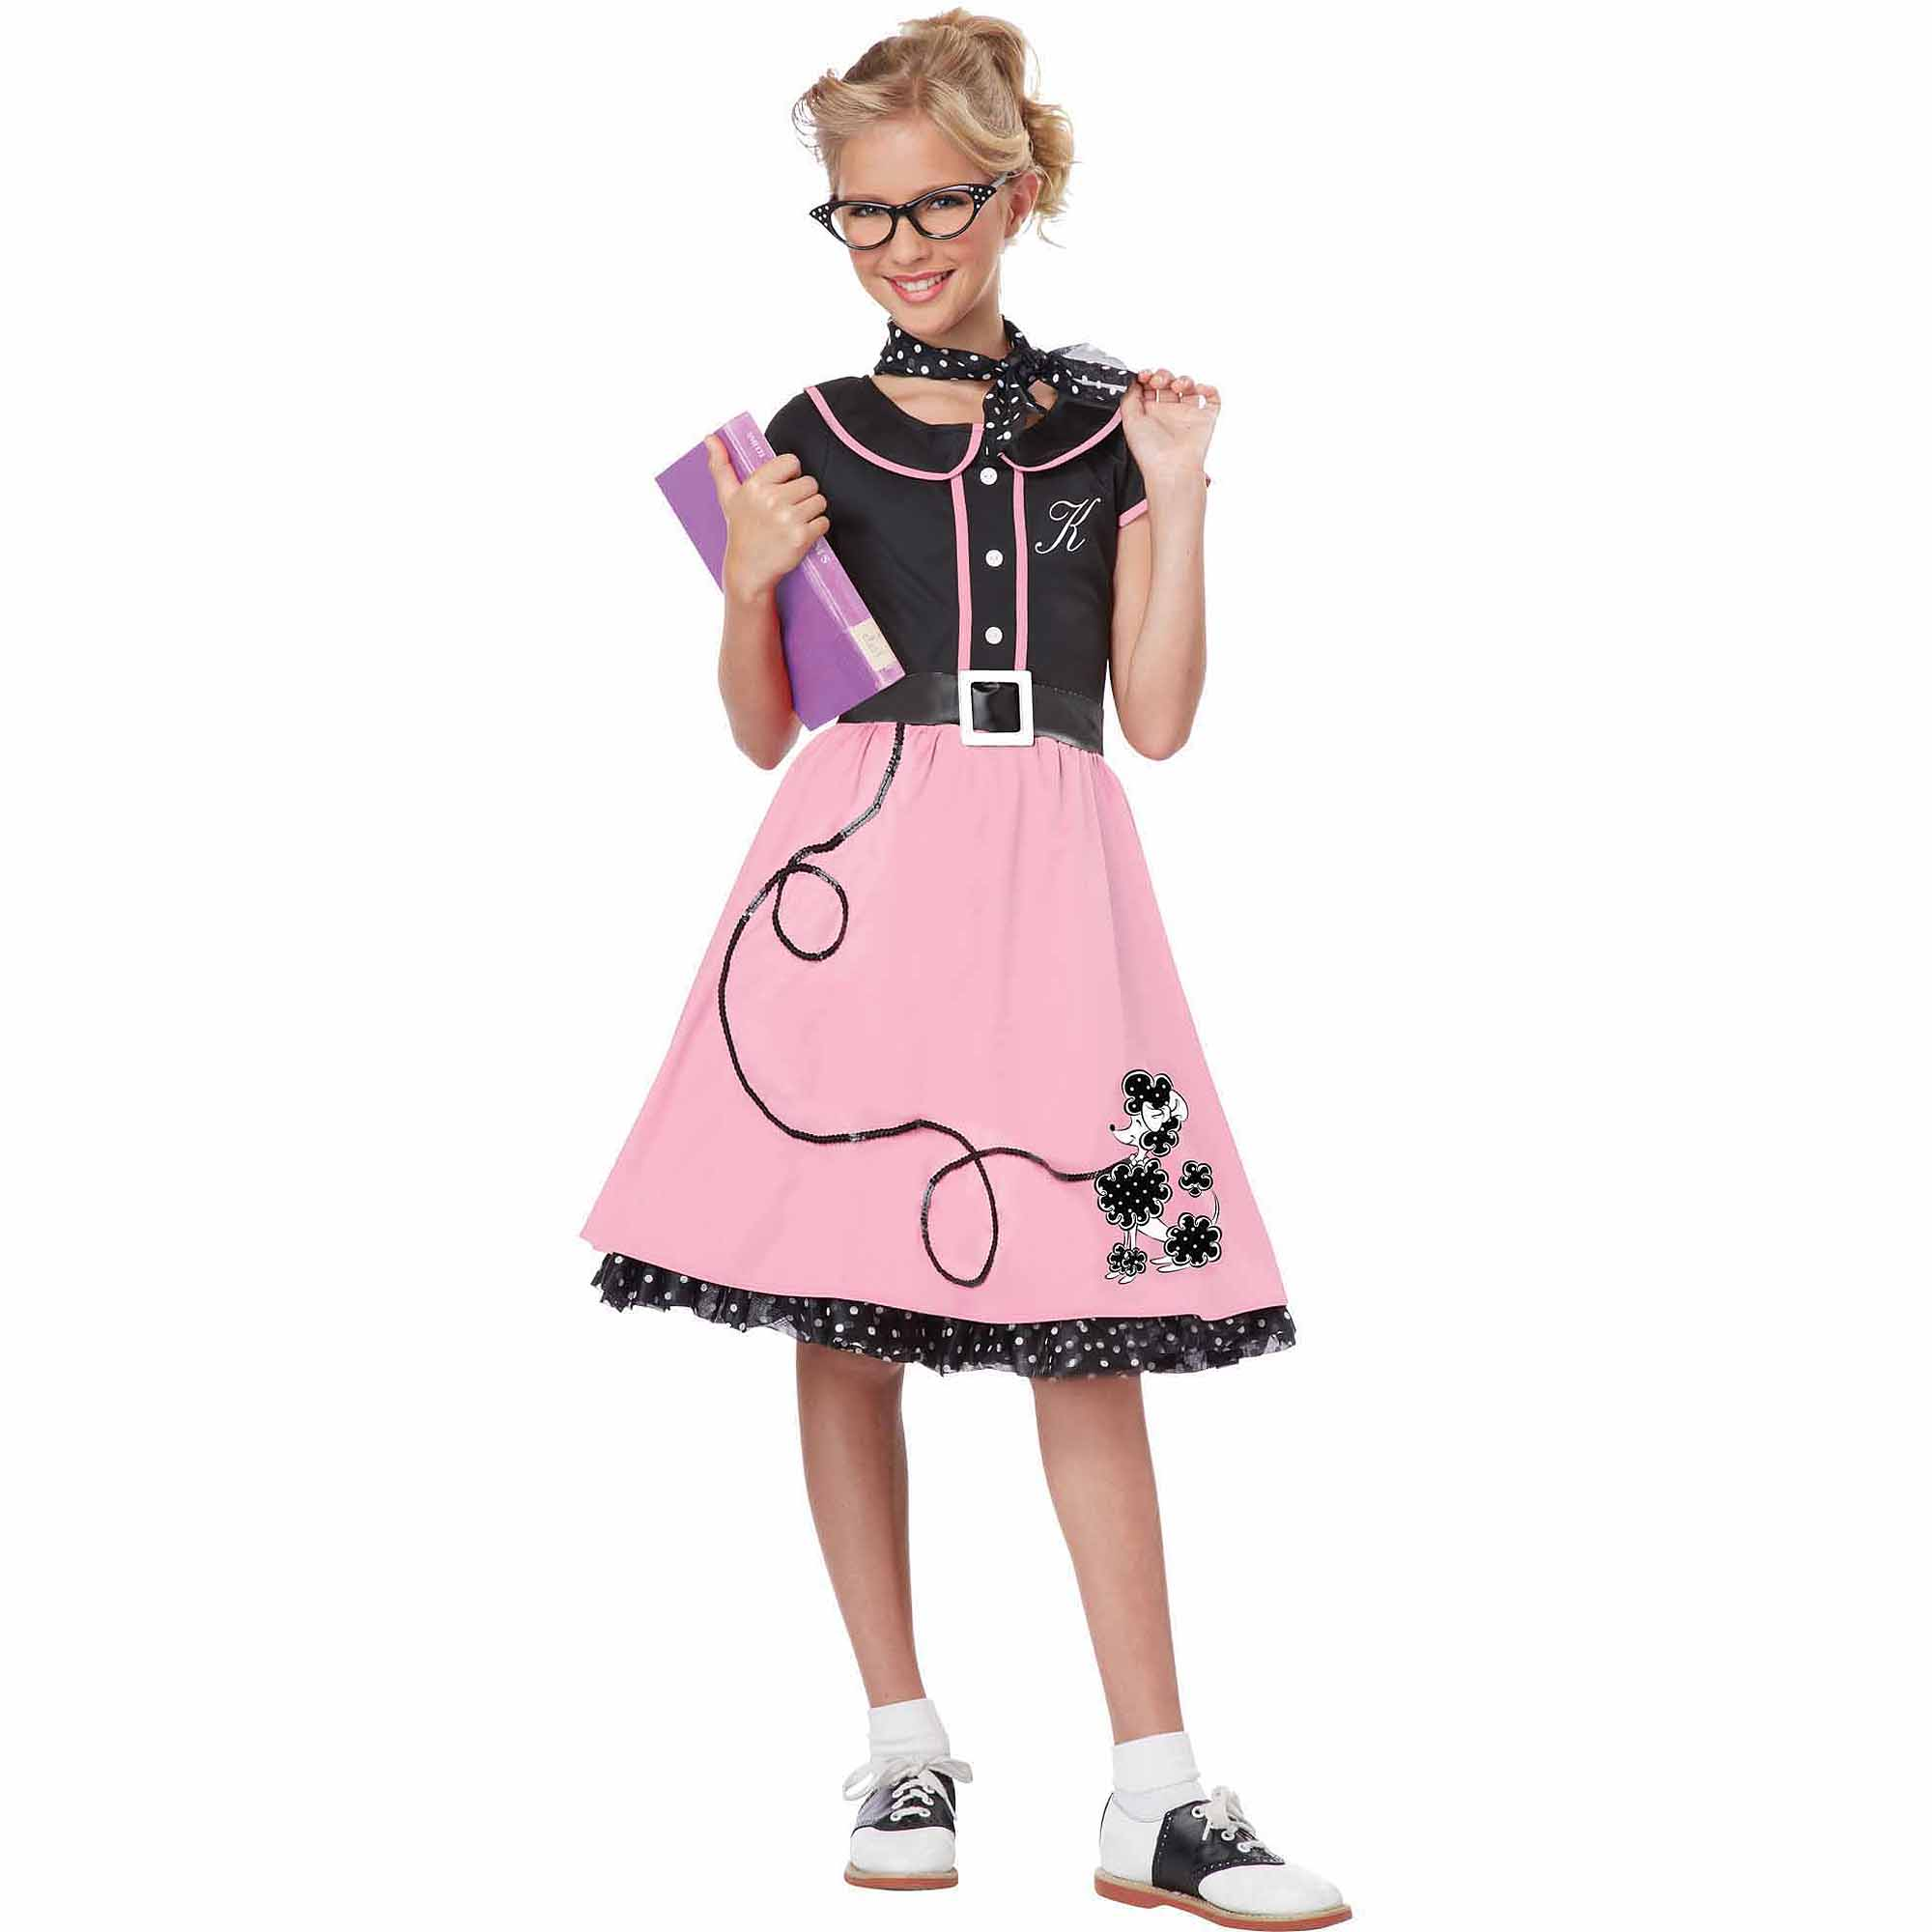 50s Sweetheart Child Halloween Costume - Walmart.com